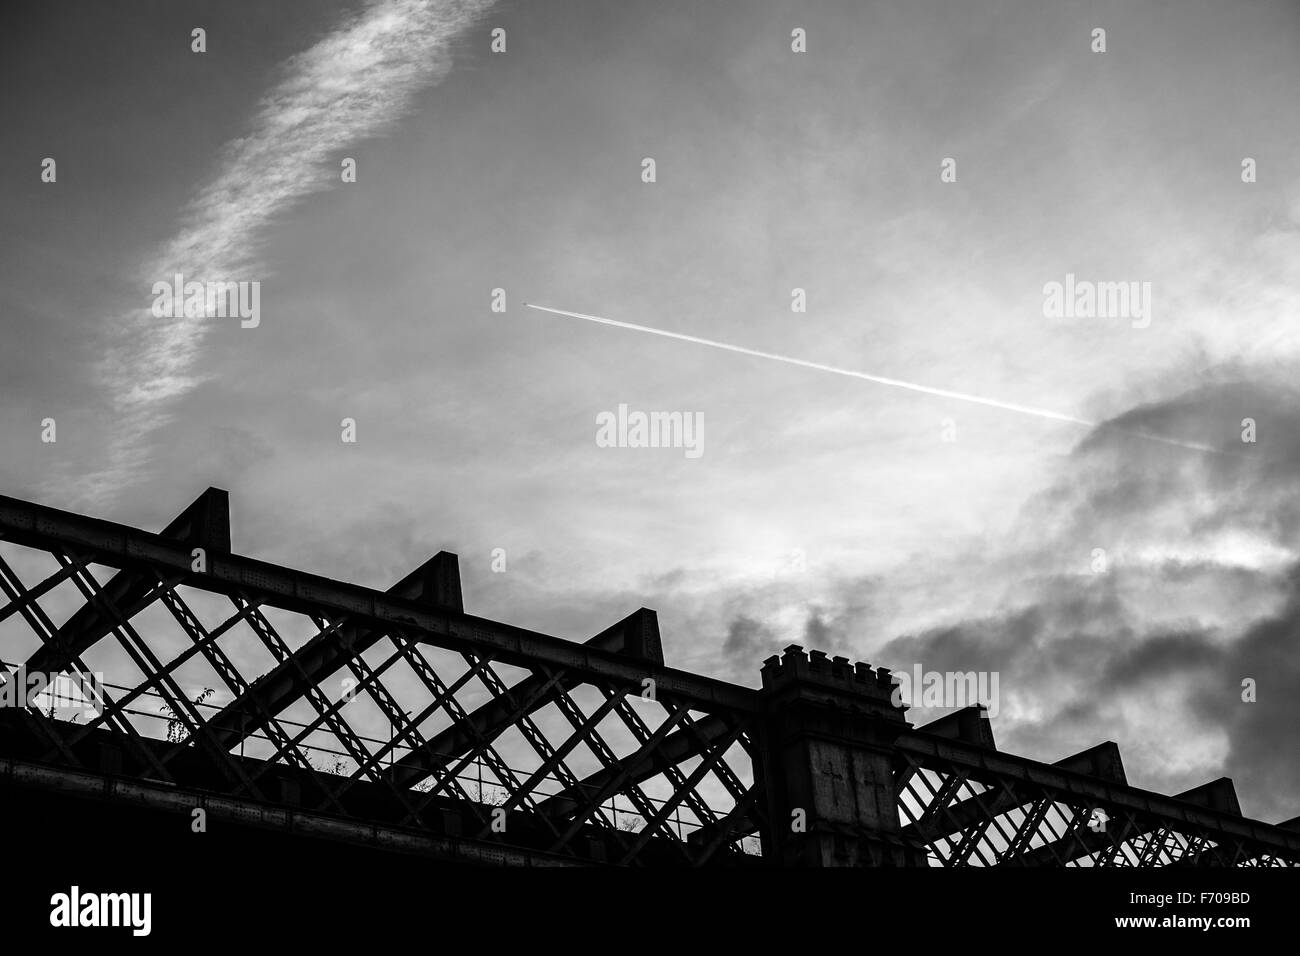 Architectural image of Castlefield, Manchester - Stock Image